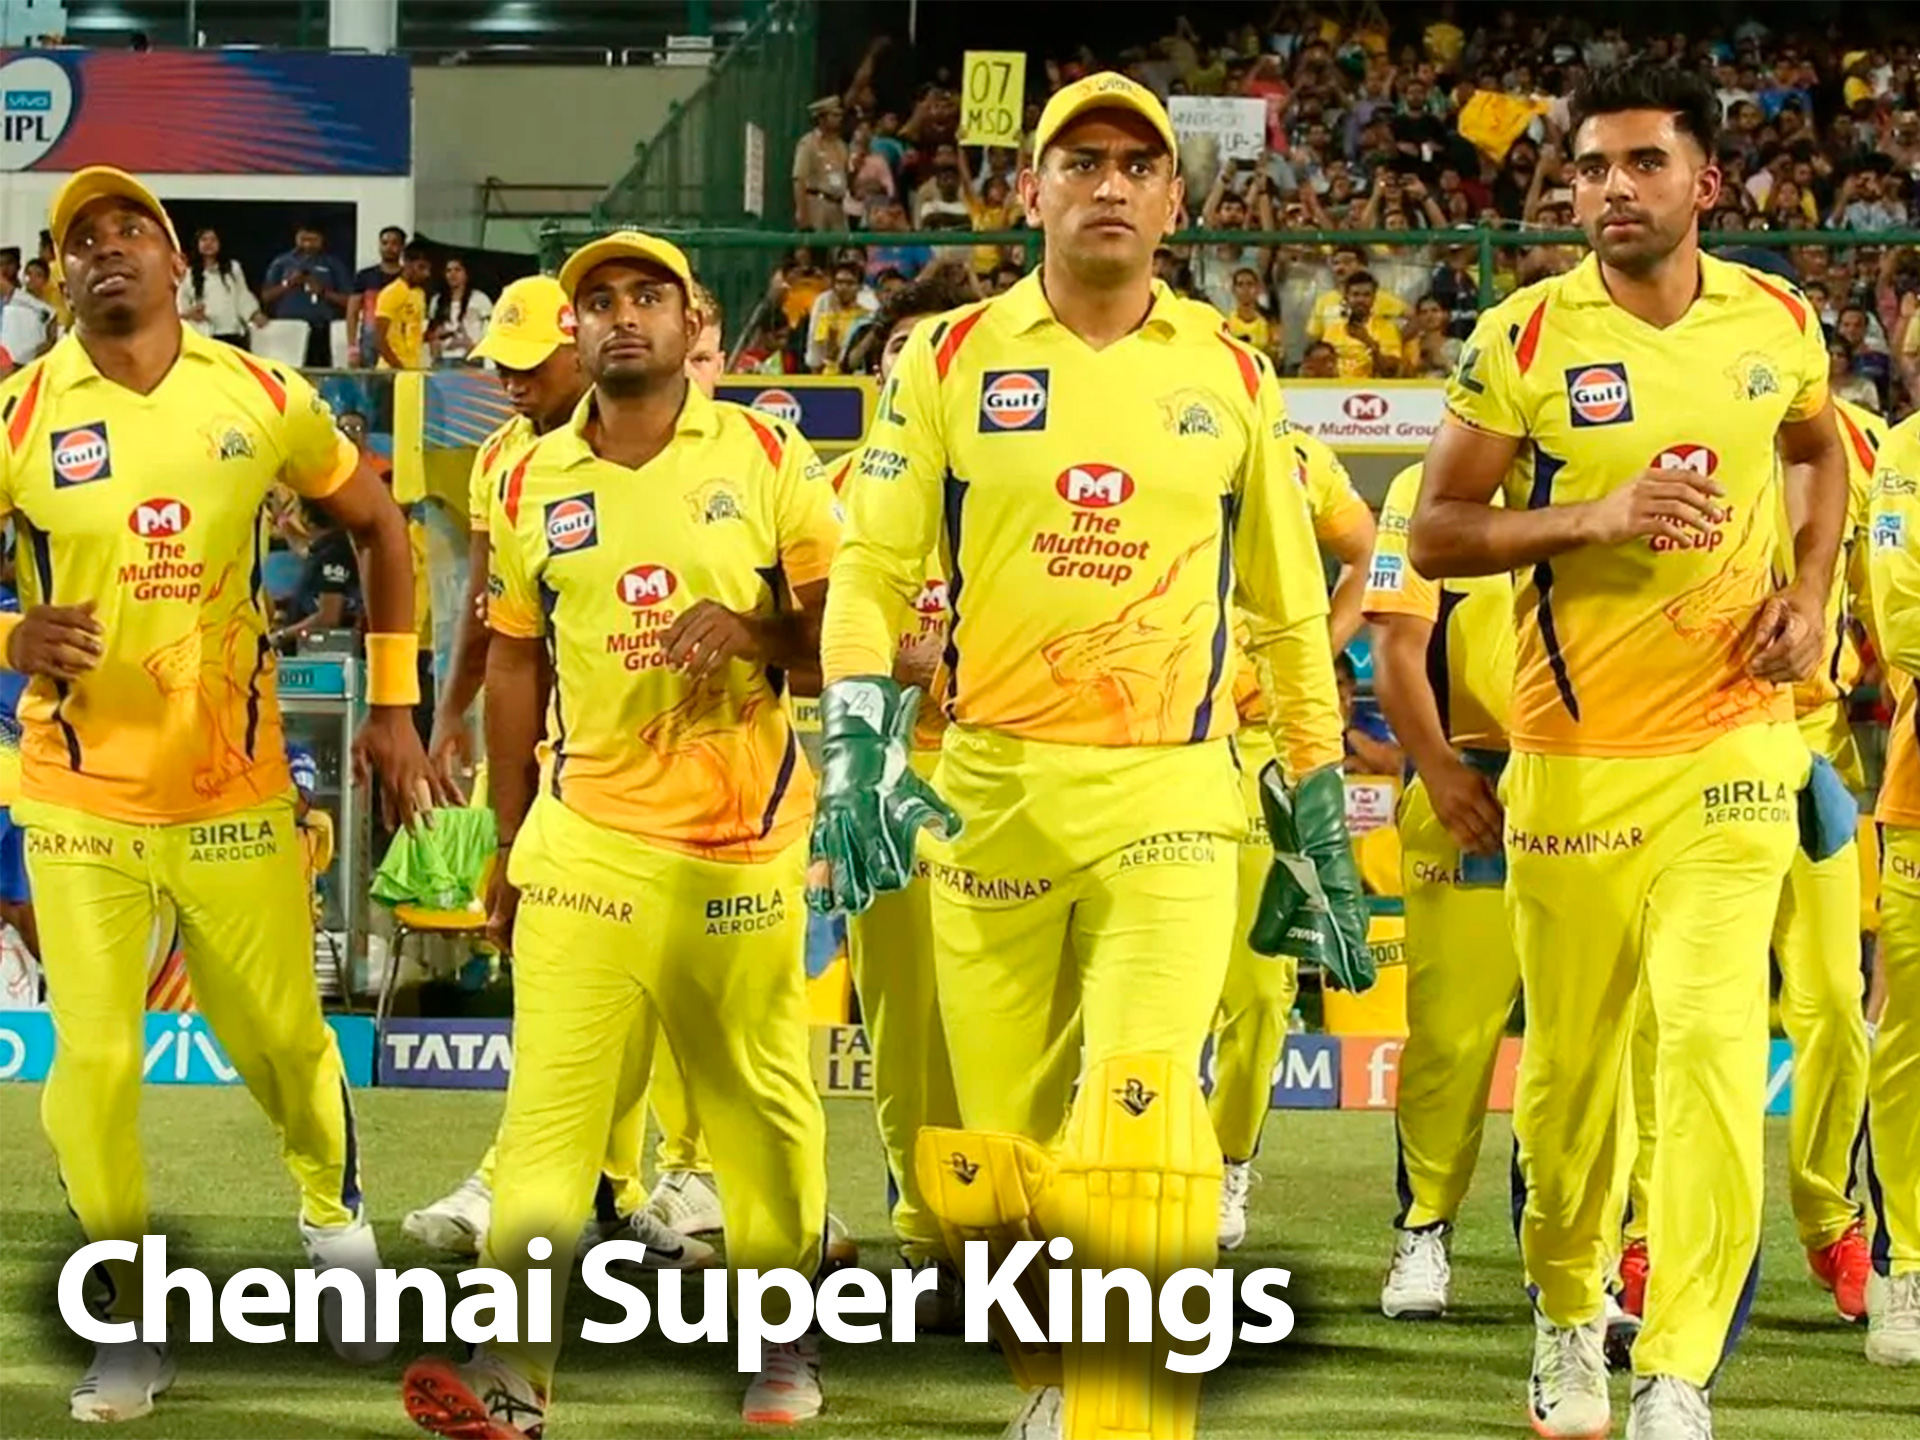 Watch the Chennap Super Kings perfomance and place bets at the best cricket betting sites.